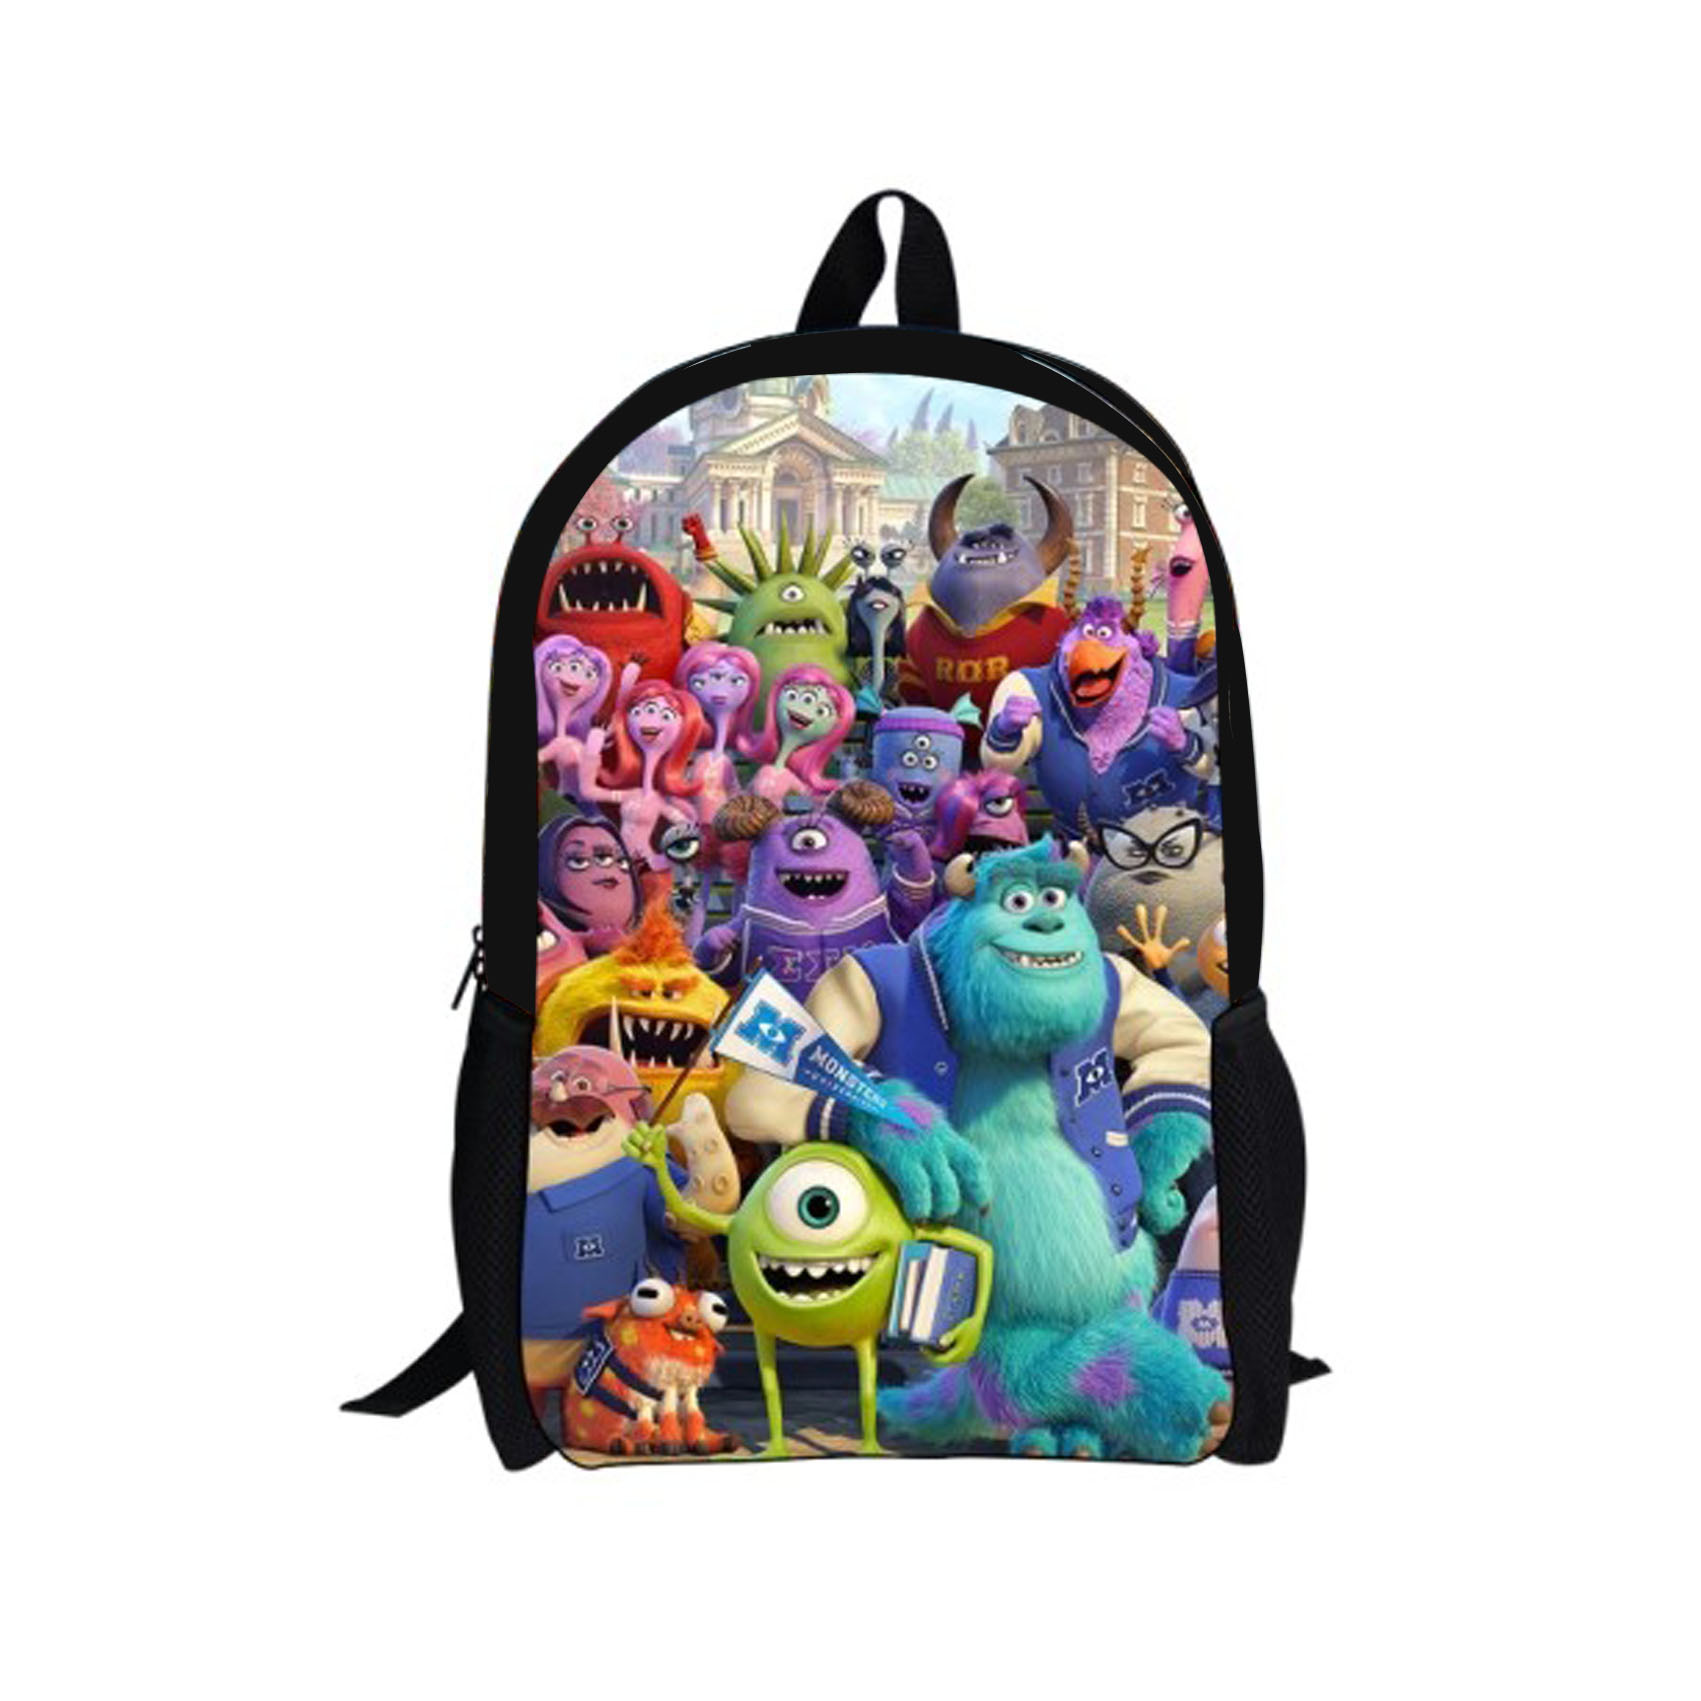 Backpack Tools - Fashion Backpacks Collection | - Part 270